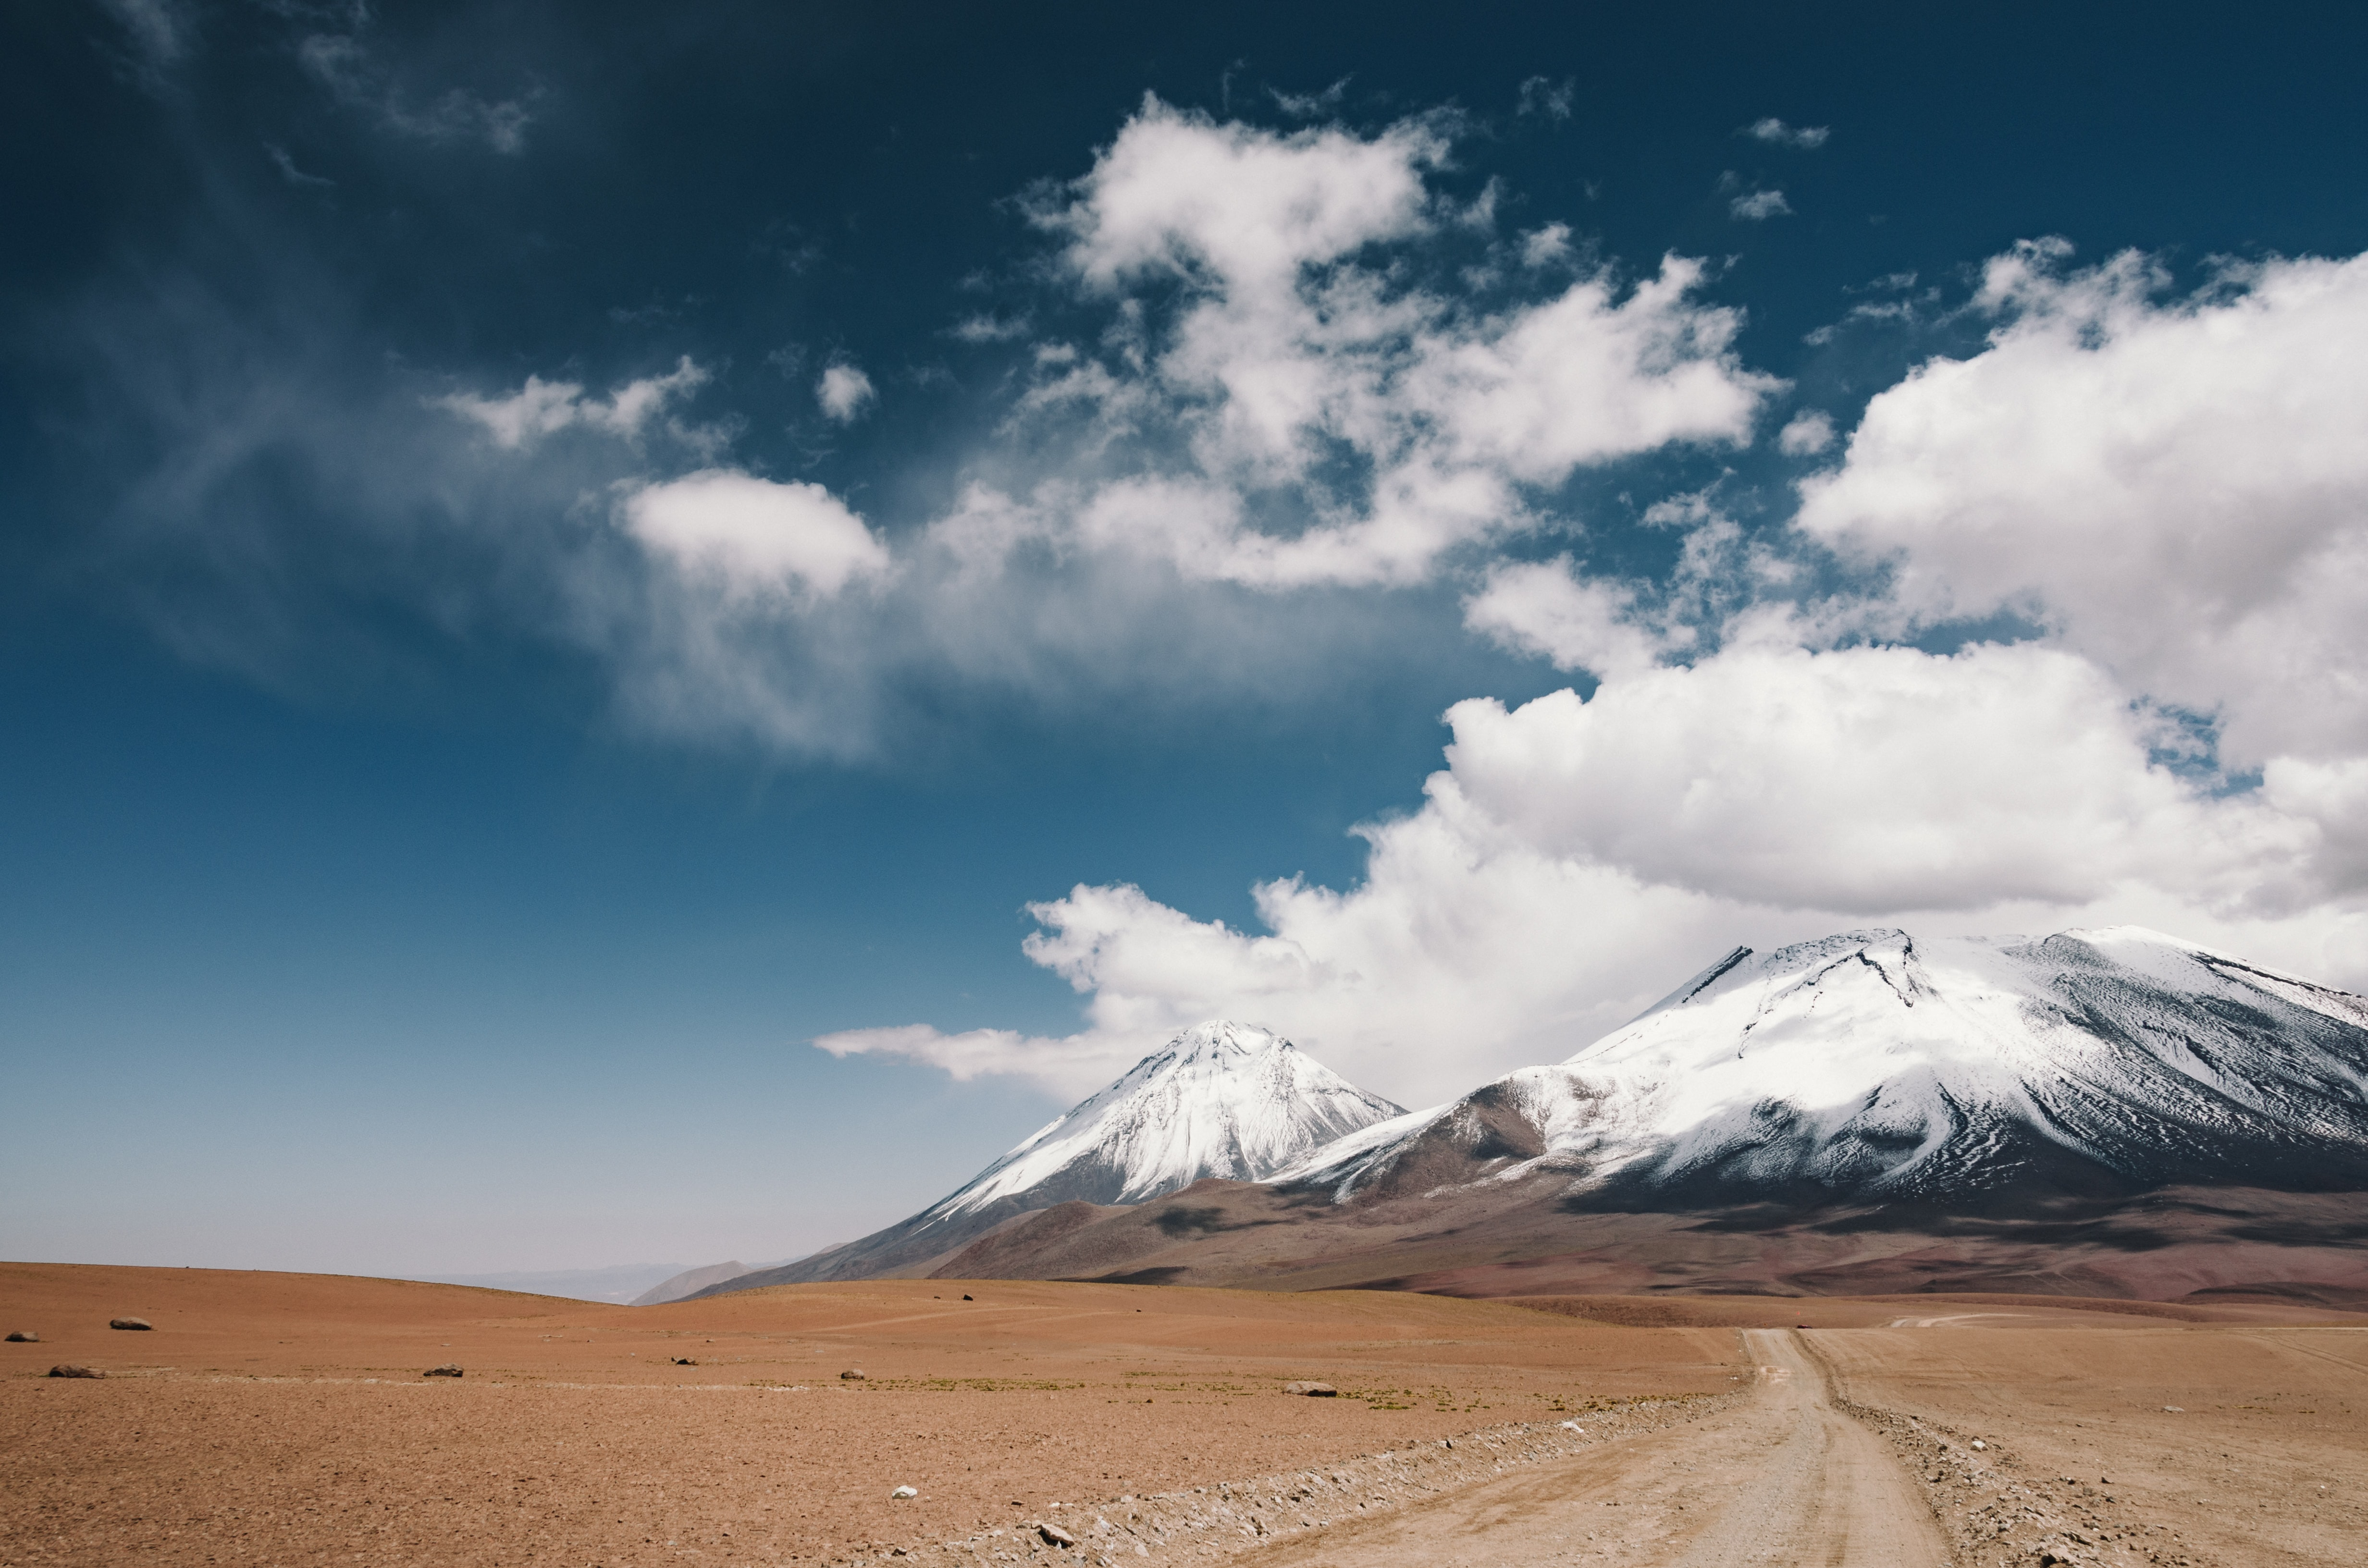 Road in the plains leading to cloud-covered snowy mountains in Licancabur